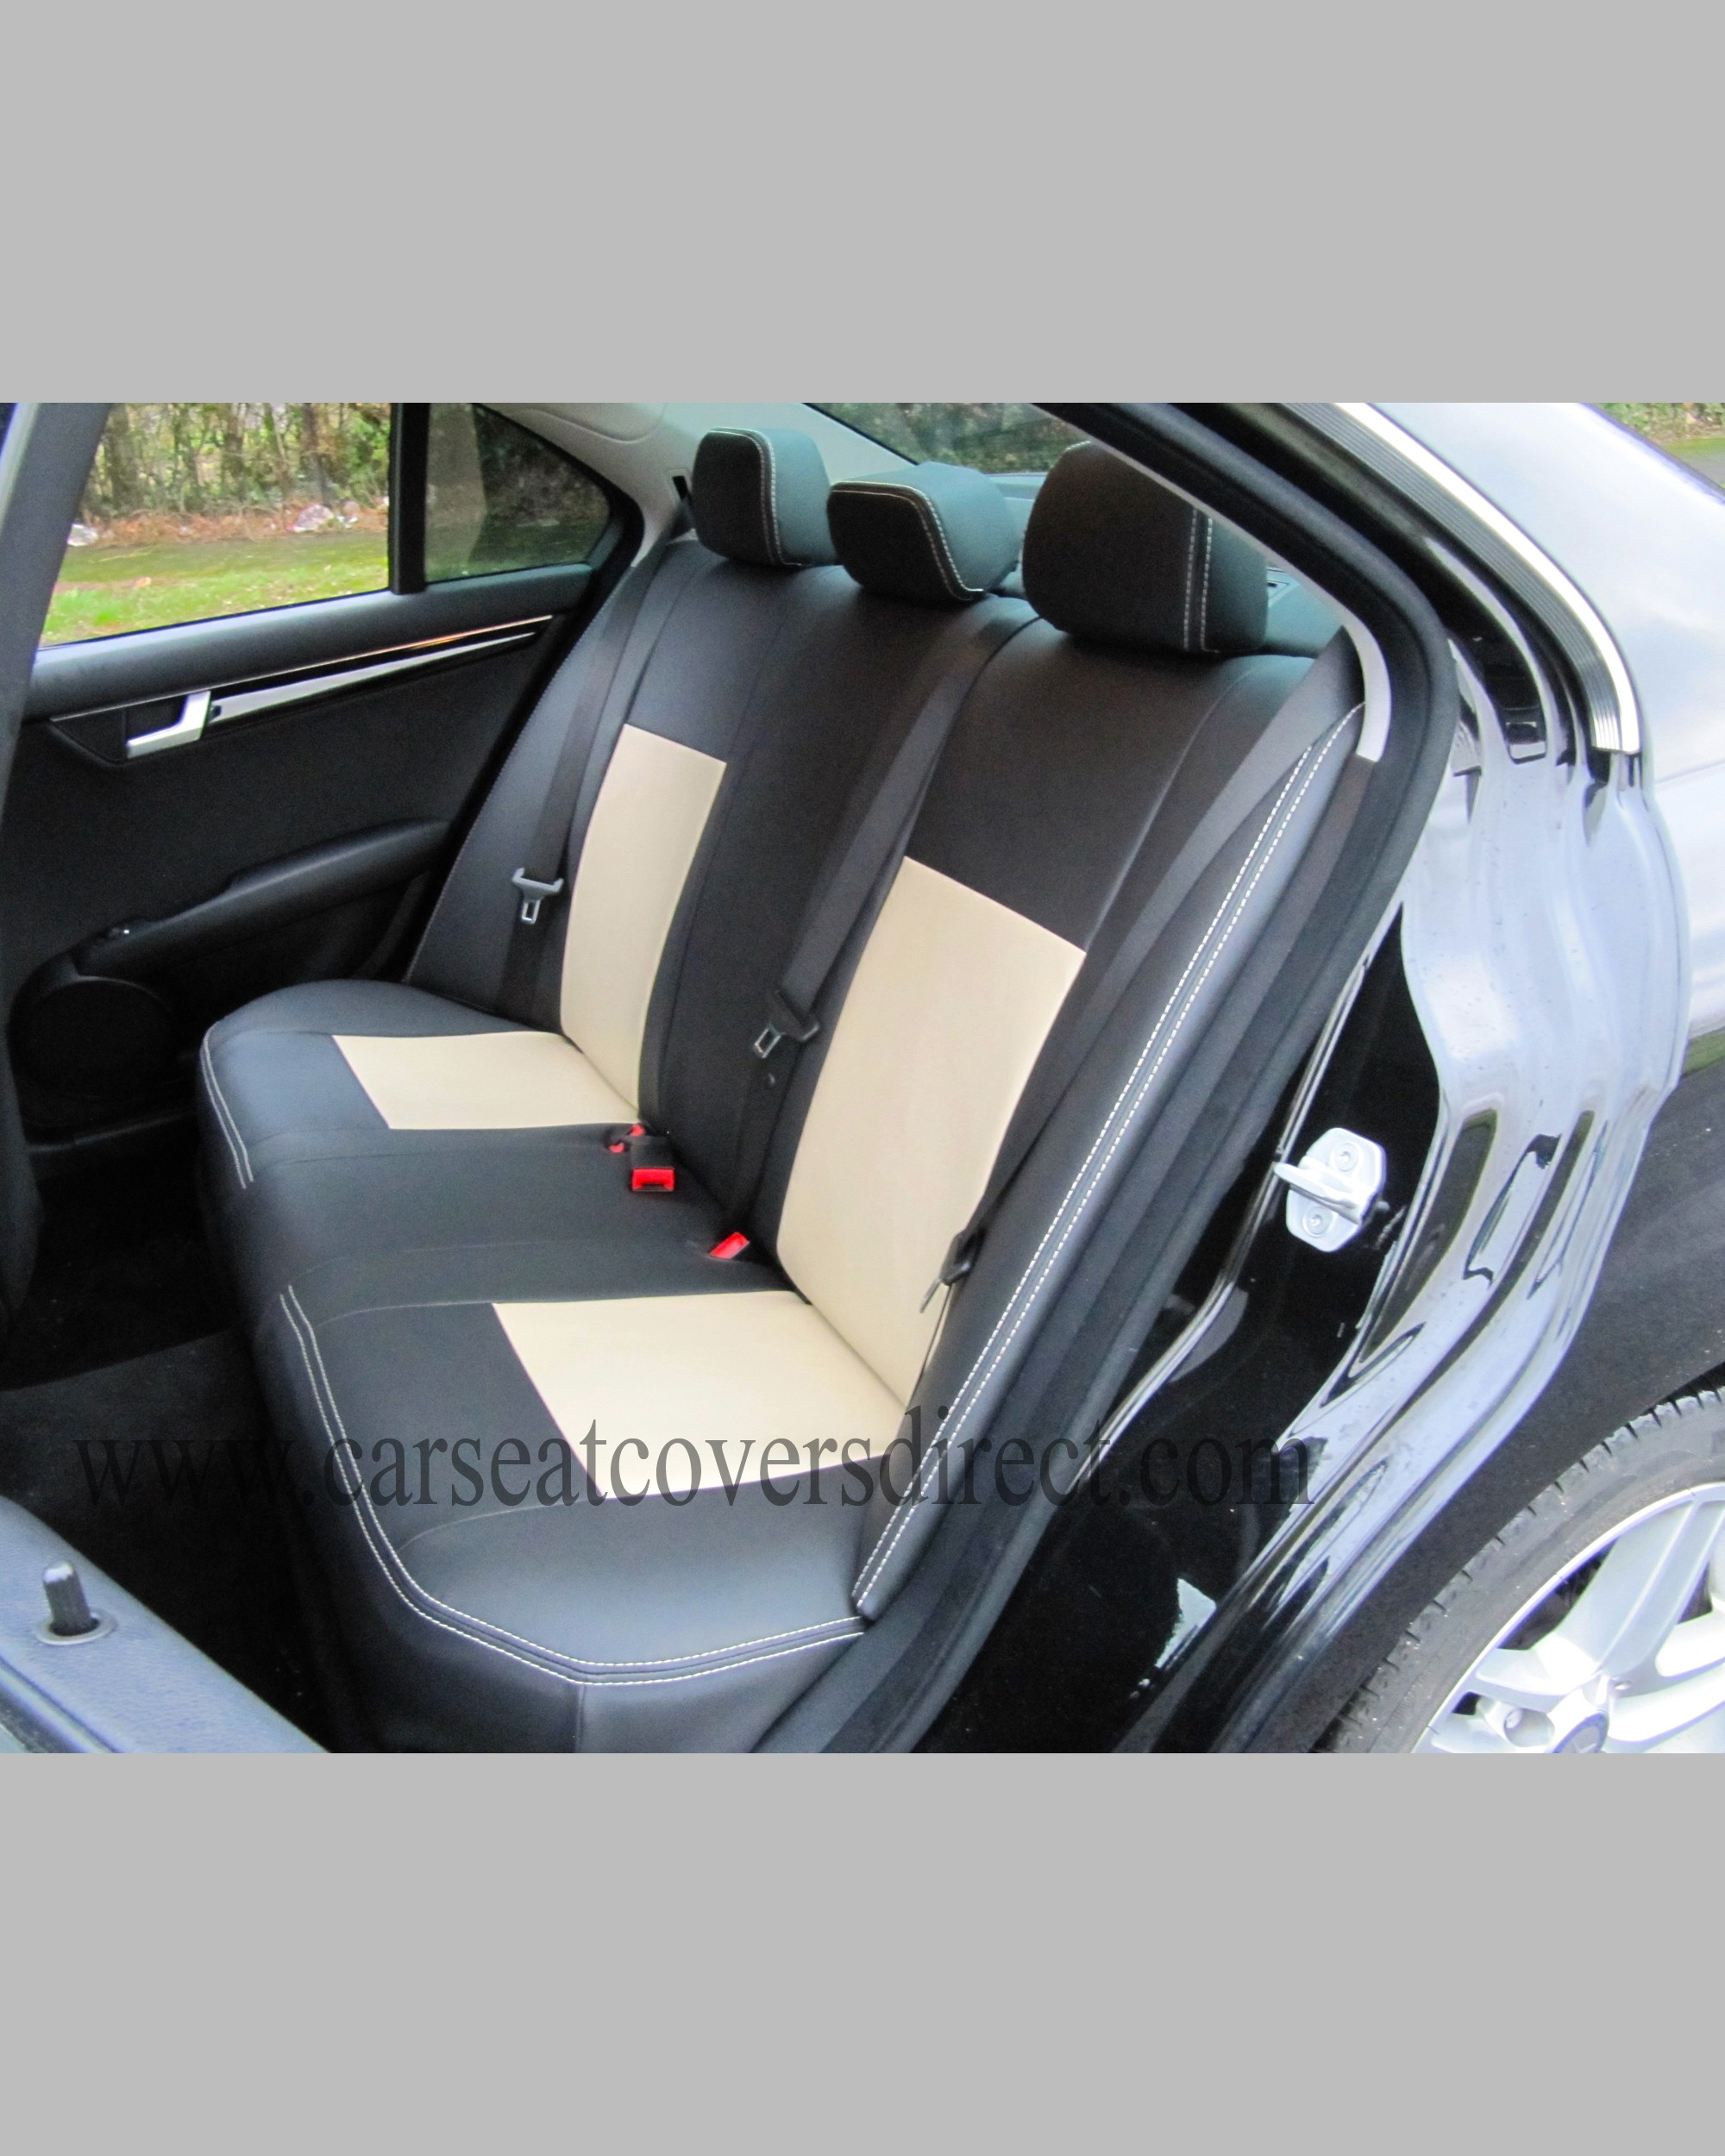 Mercedes c class w204 black beige seat covers car seat for Mercedes benz e350 car cover